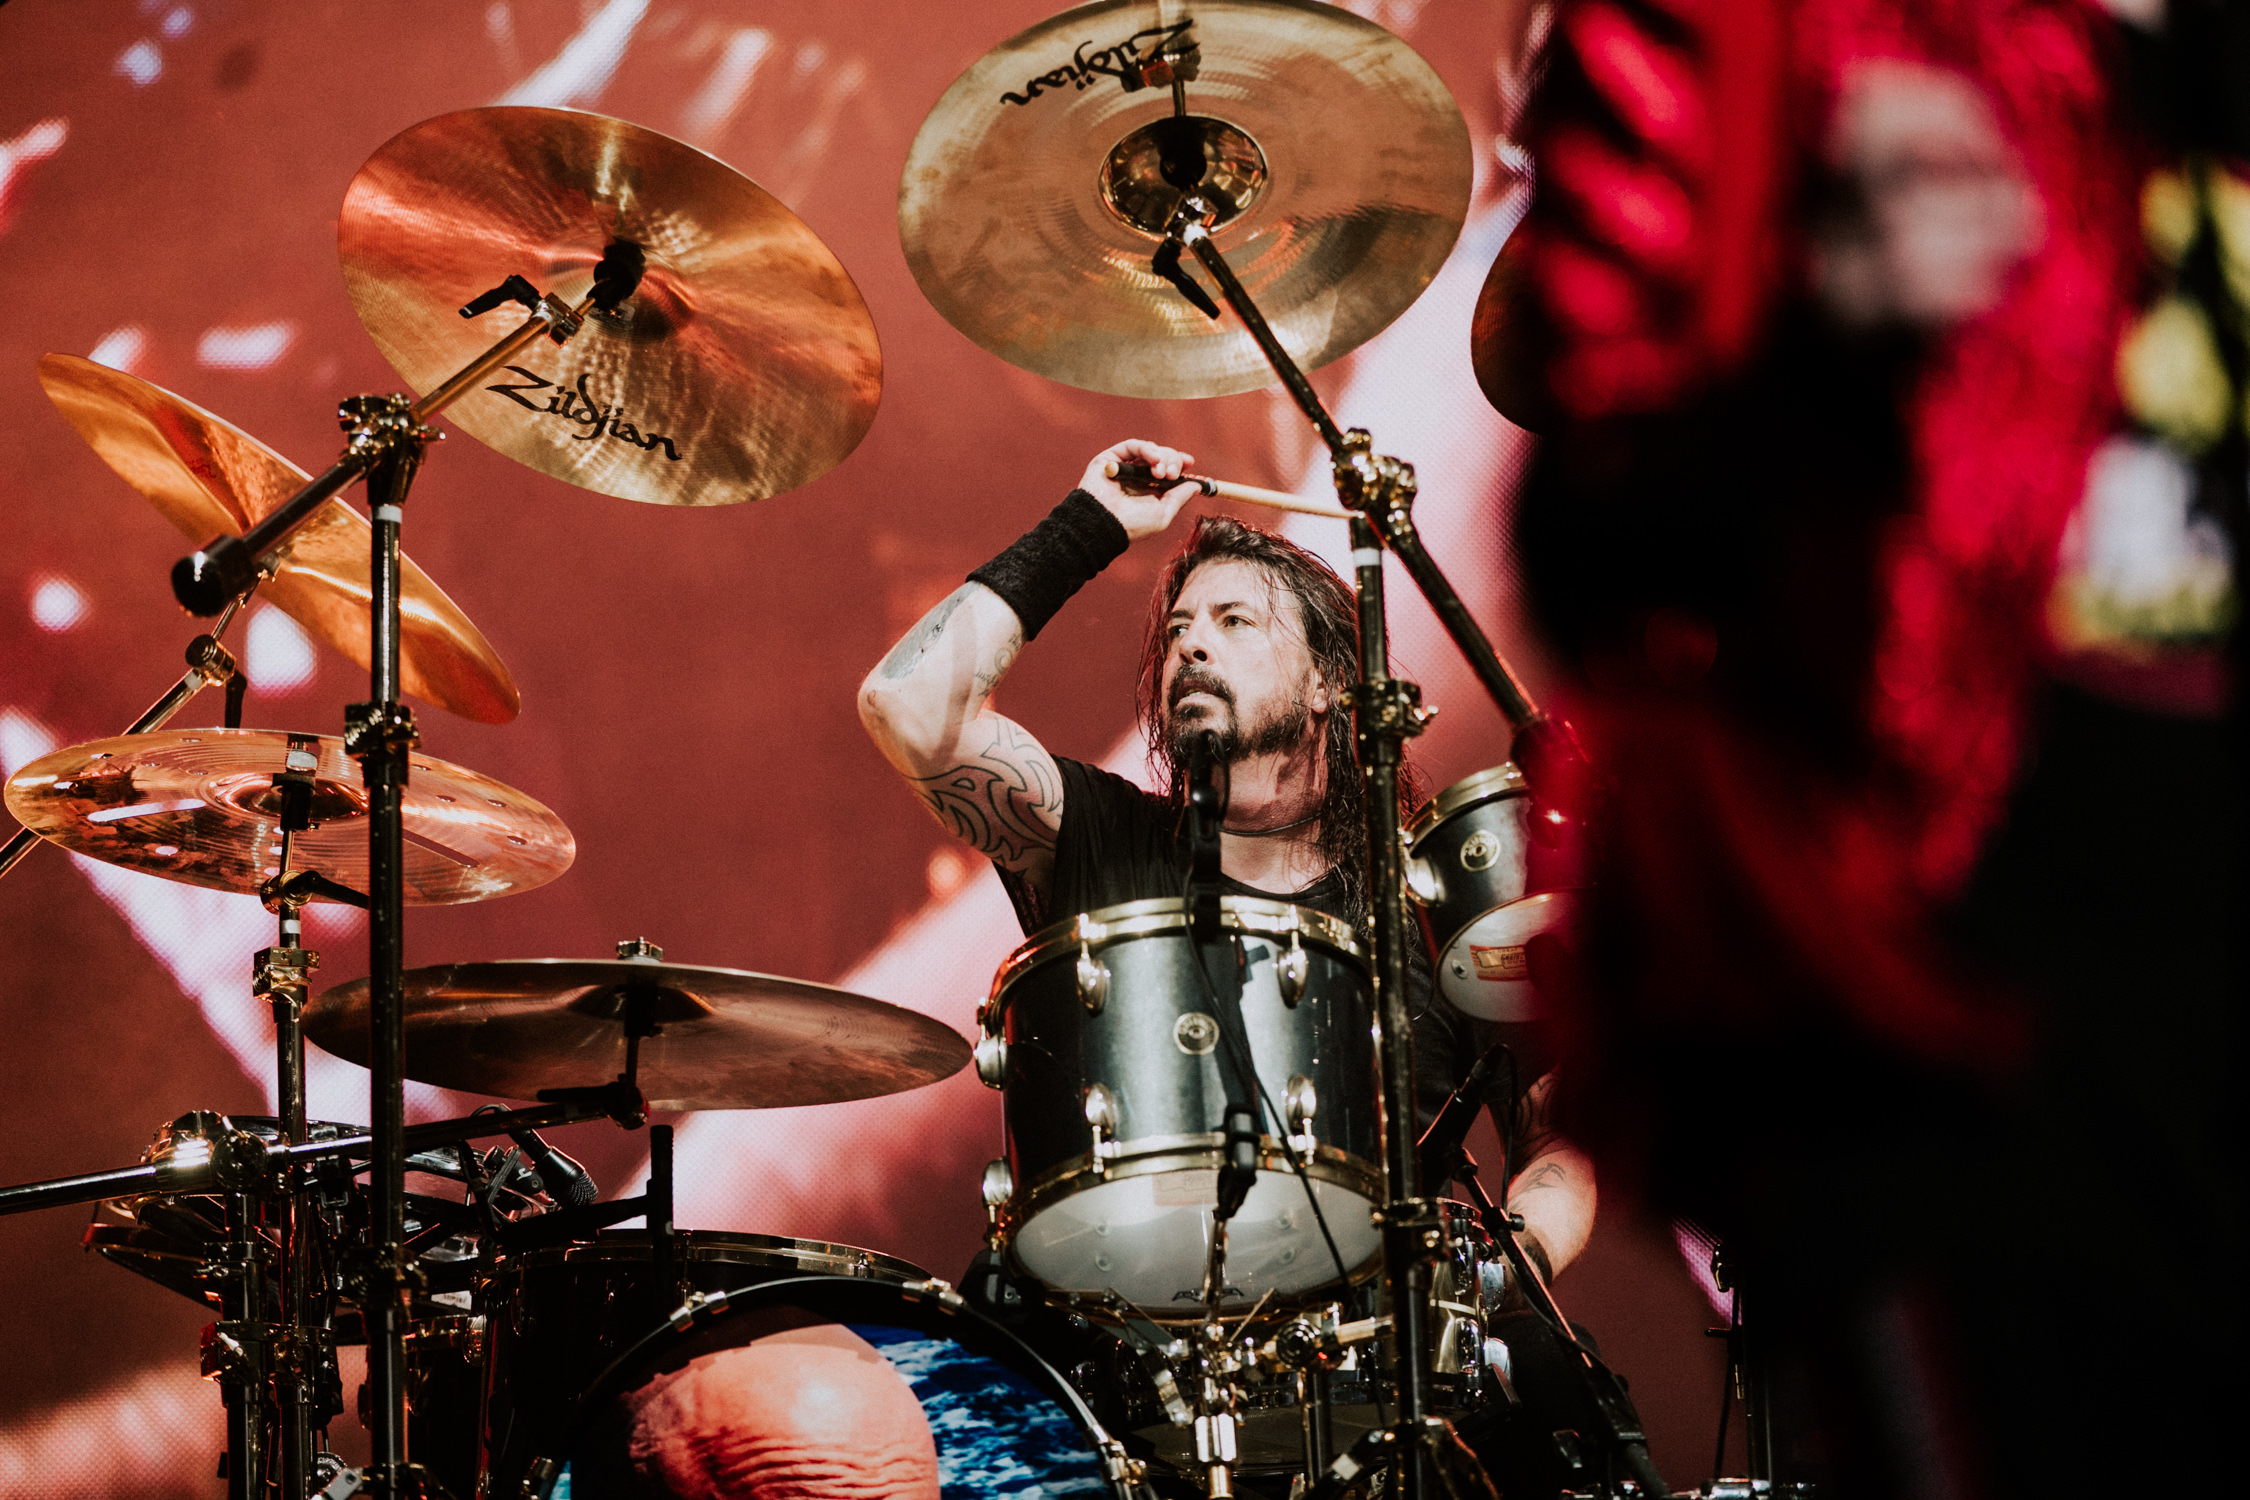 dave-grohl-foo-fighters-drums-live-AnnaLeeMedia